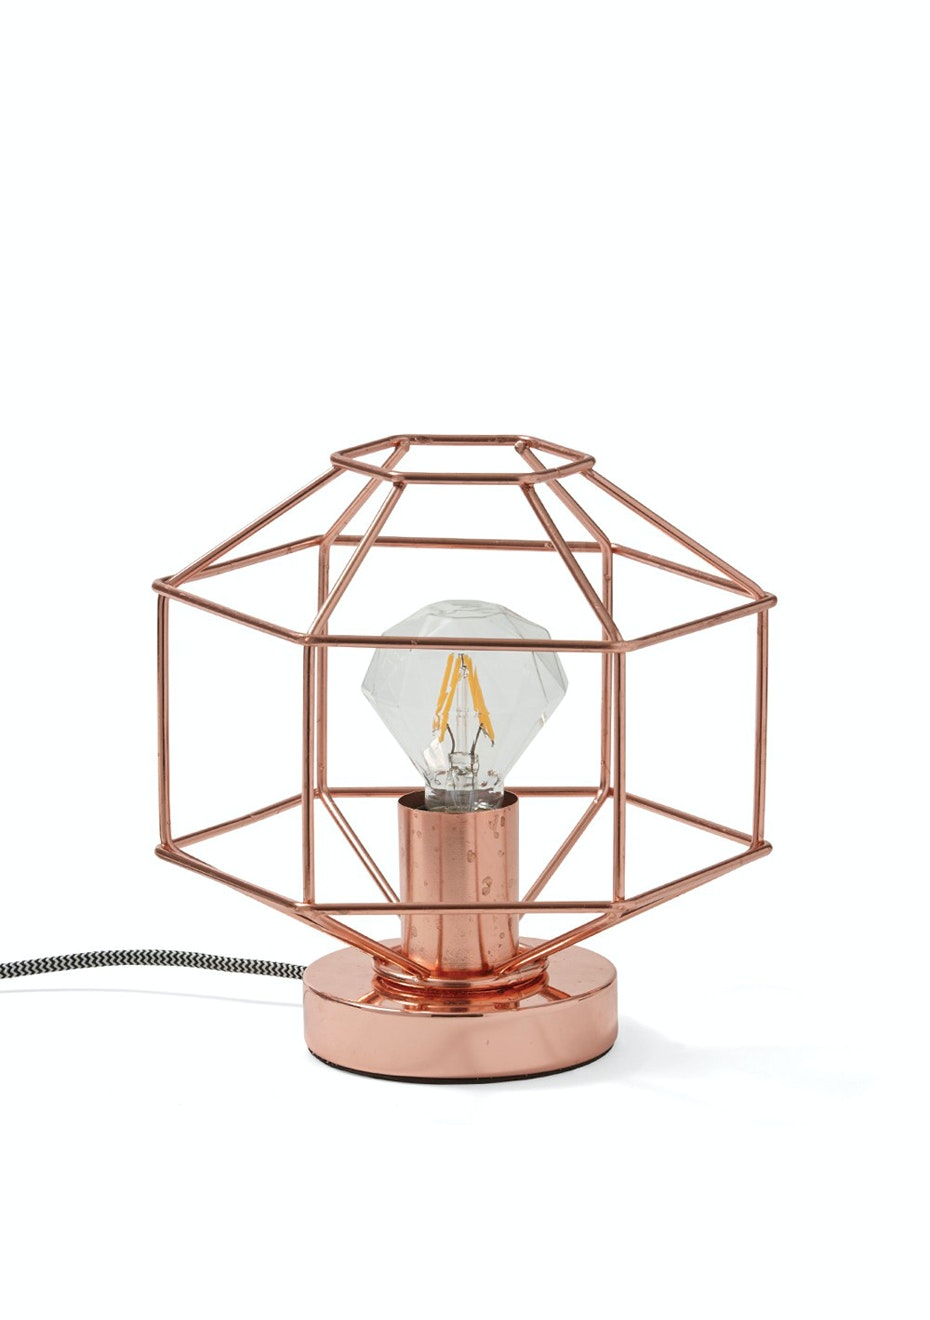 Me & My Trend - Copper Outline Lamp